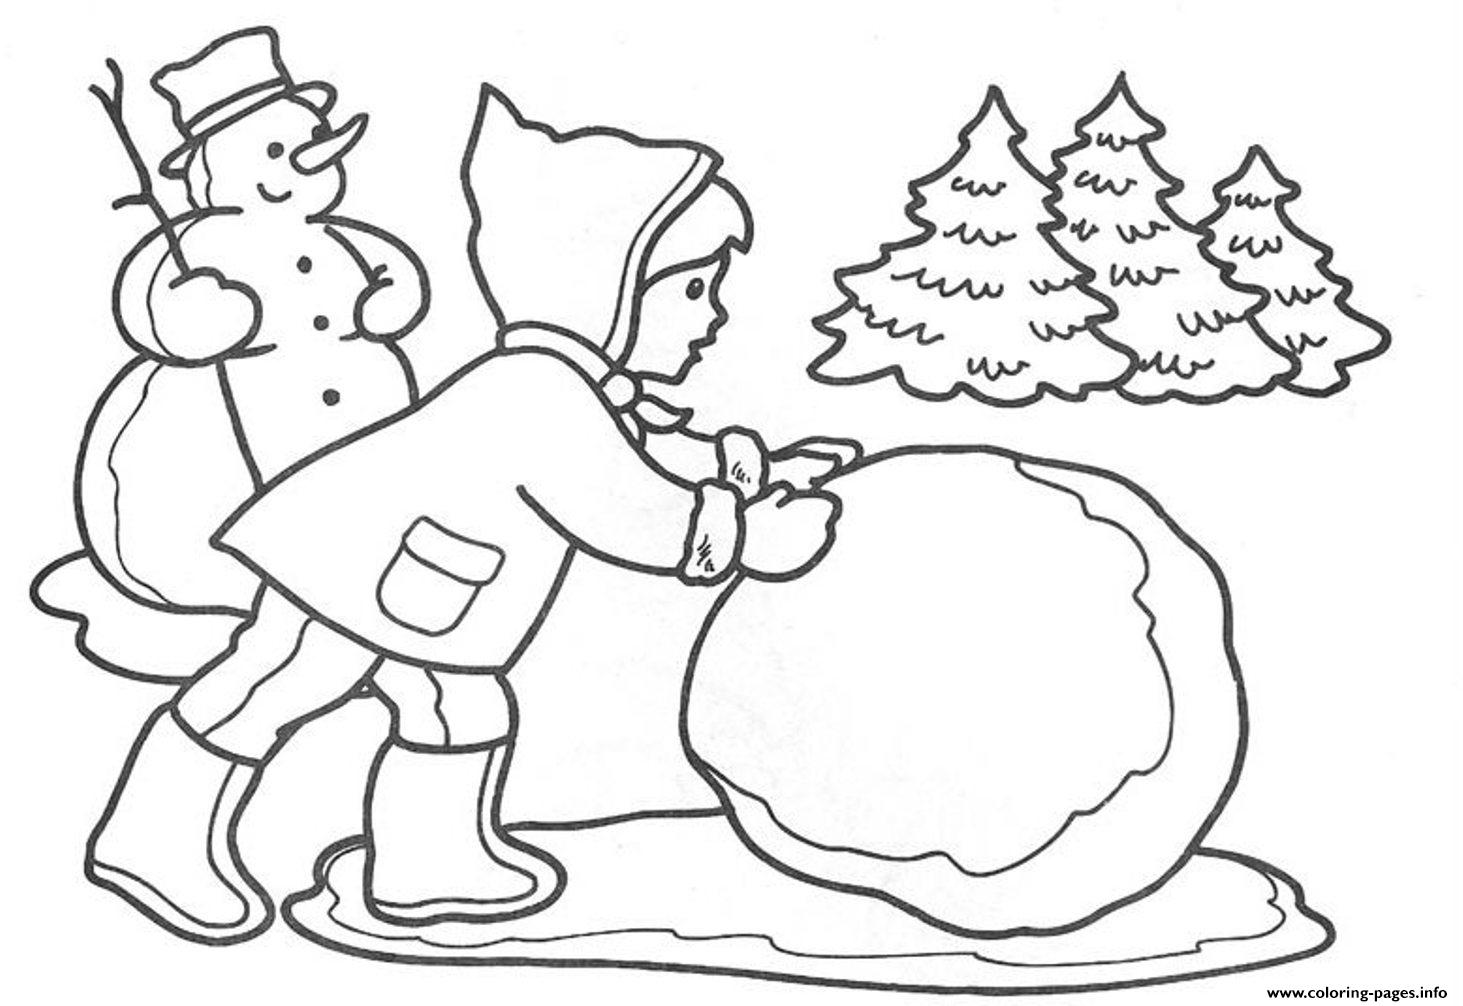 Making Snowball Winter S For Kids4ec1 Coloring Pages Printable